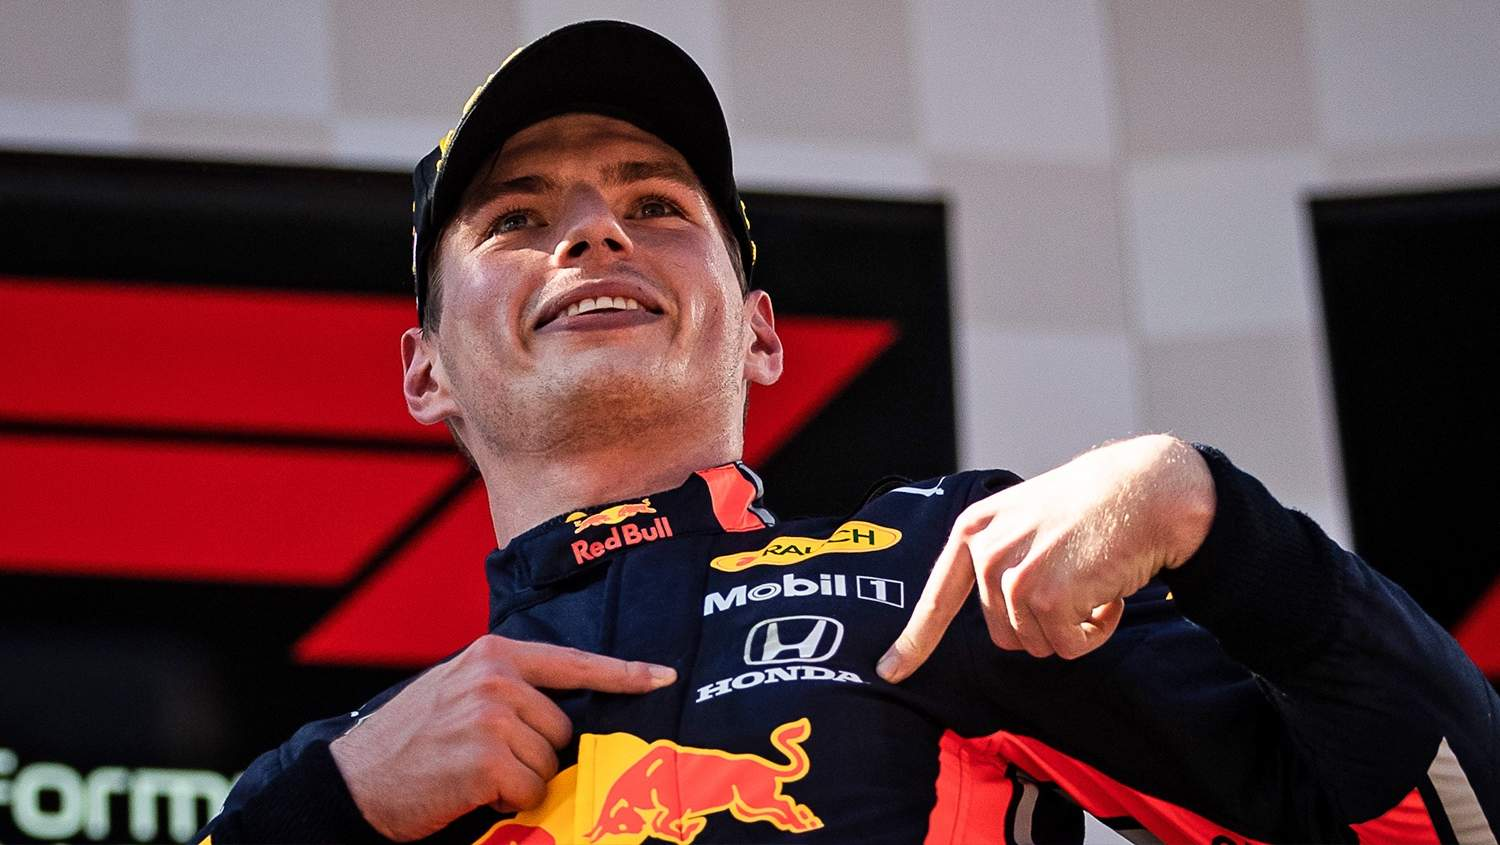 Max Verstappen extends with Red Bull until the end of 2023